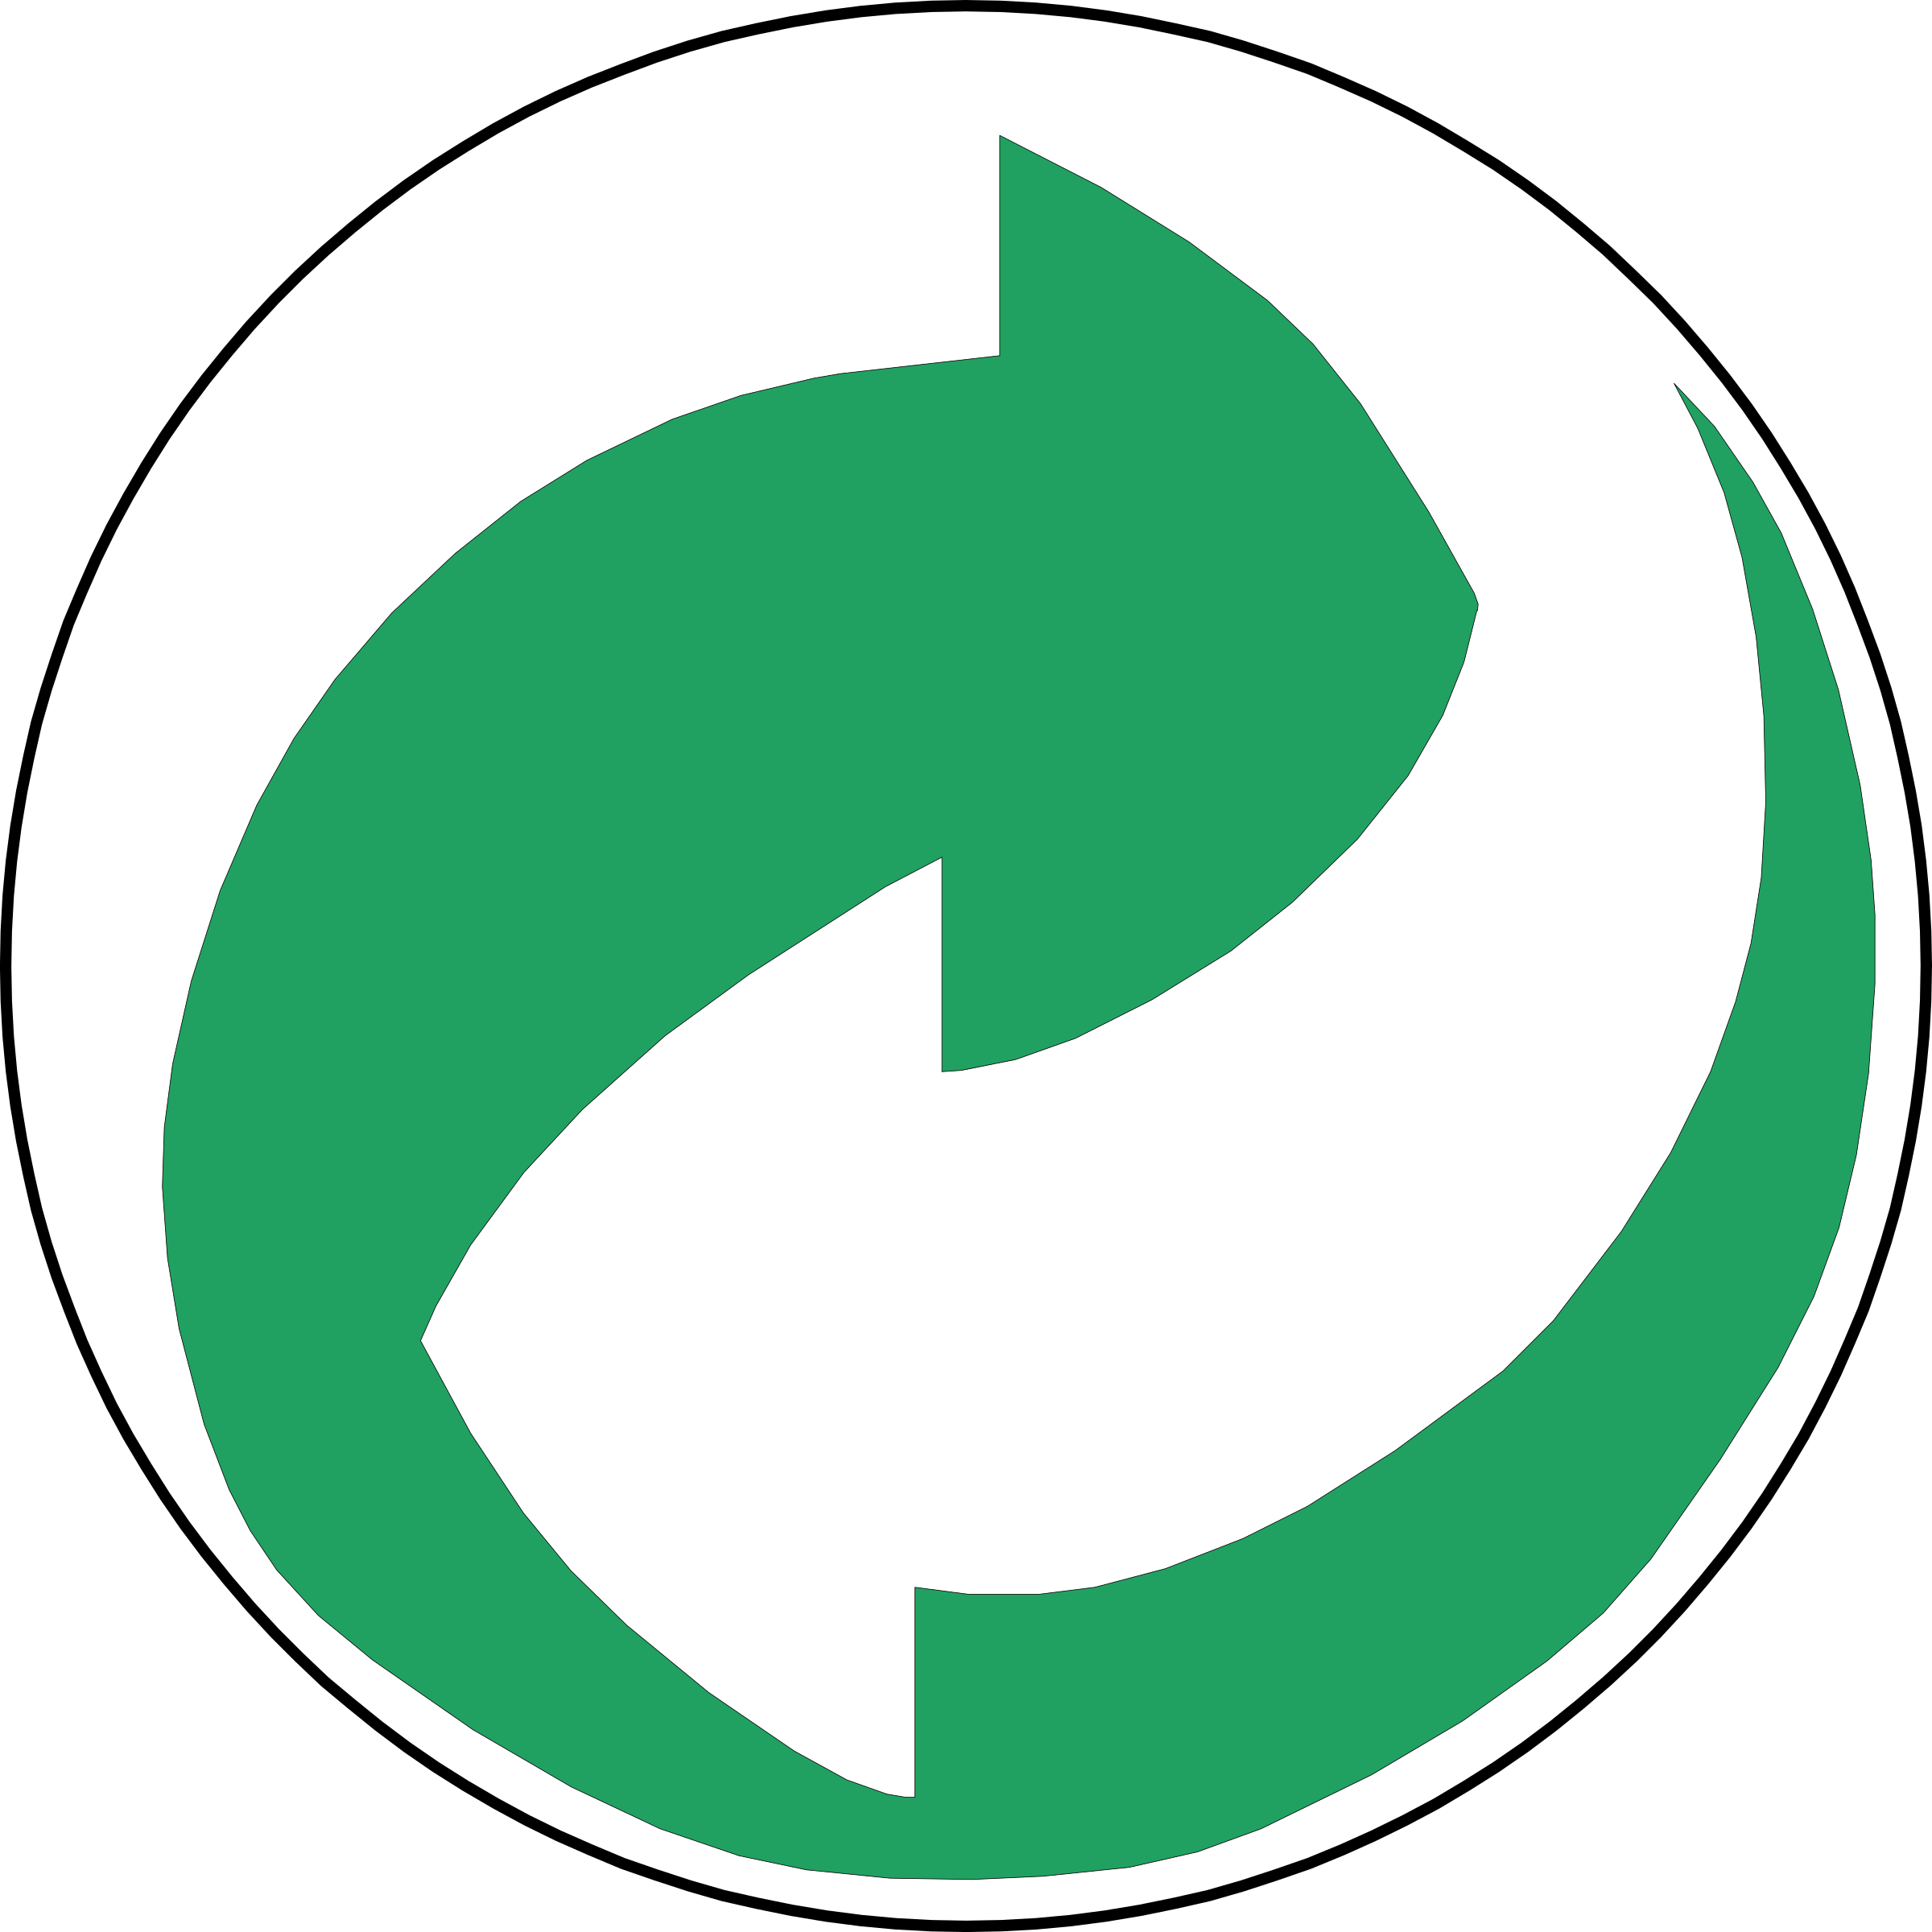 Recycling Symbol Green and White Arrows by palomaironique